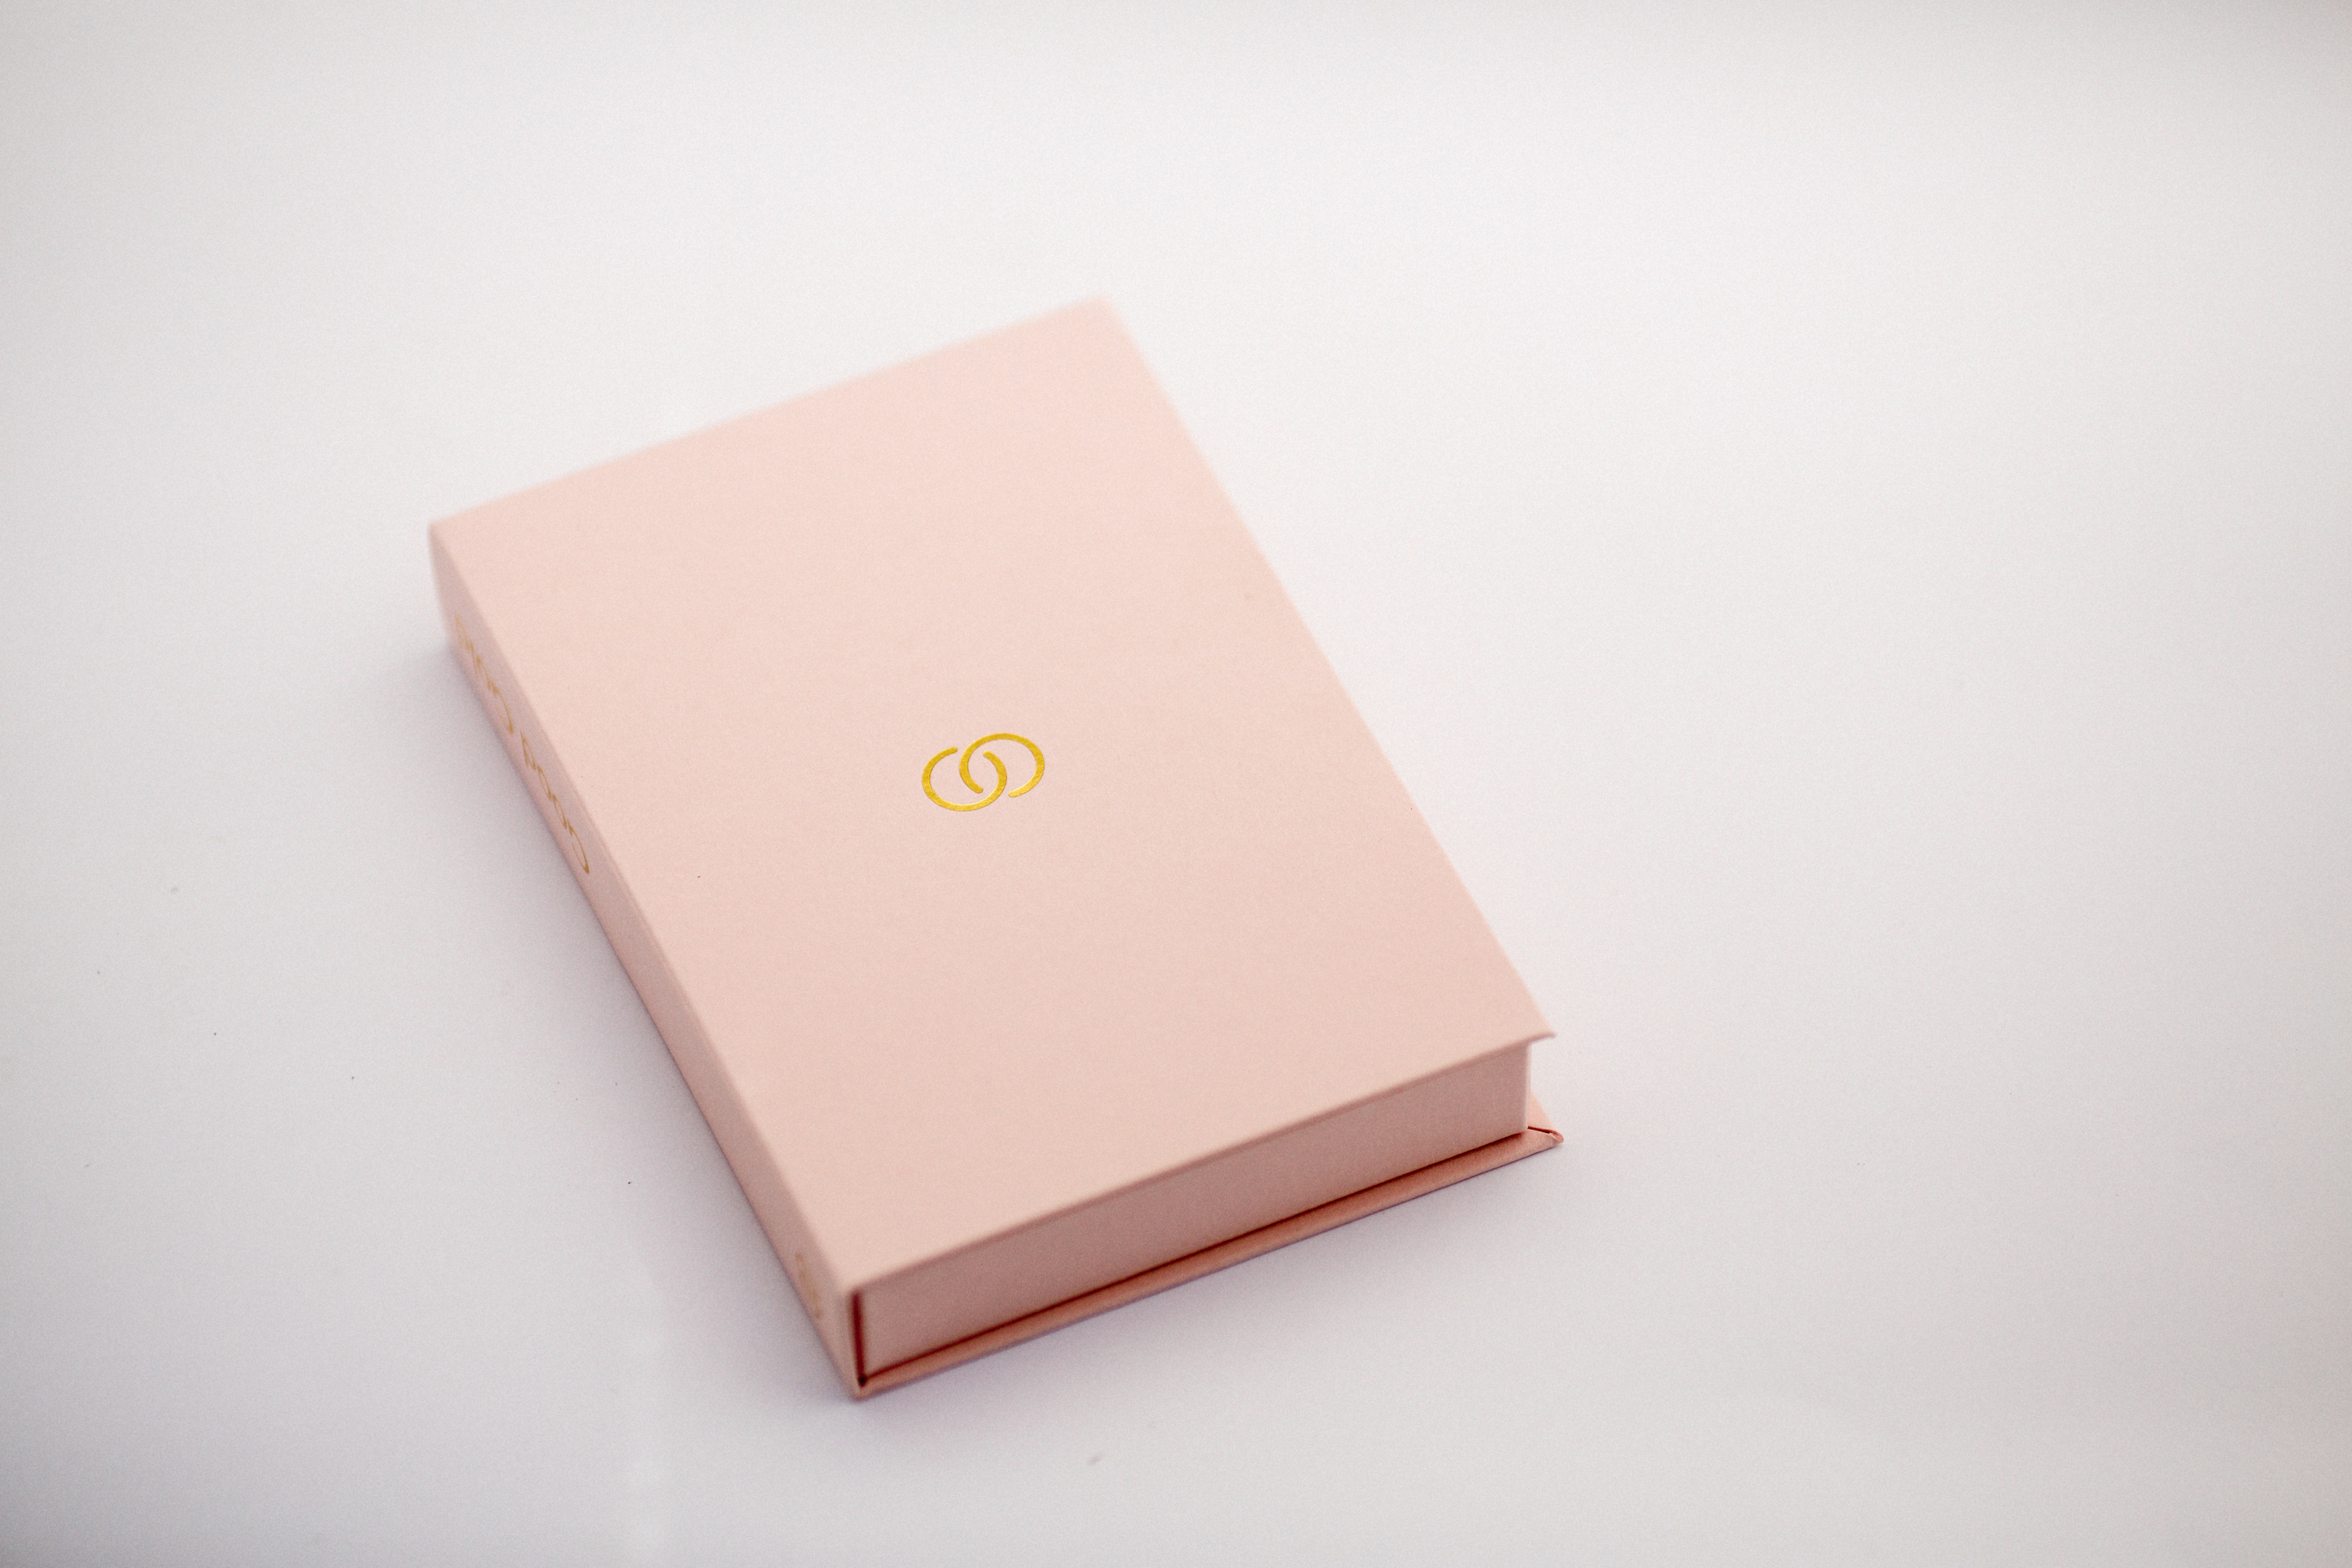 A packaging box from Good Gold